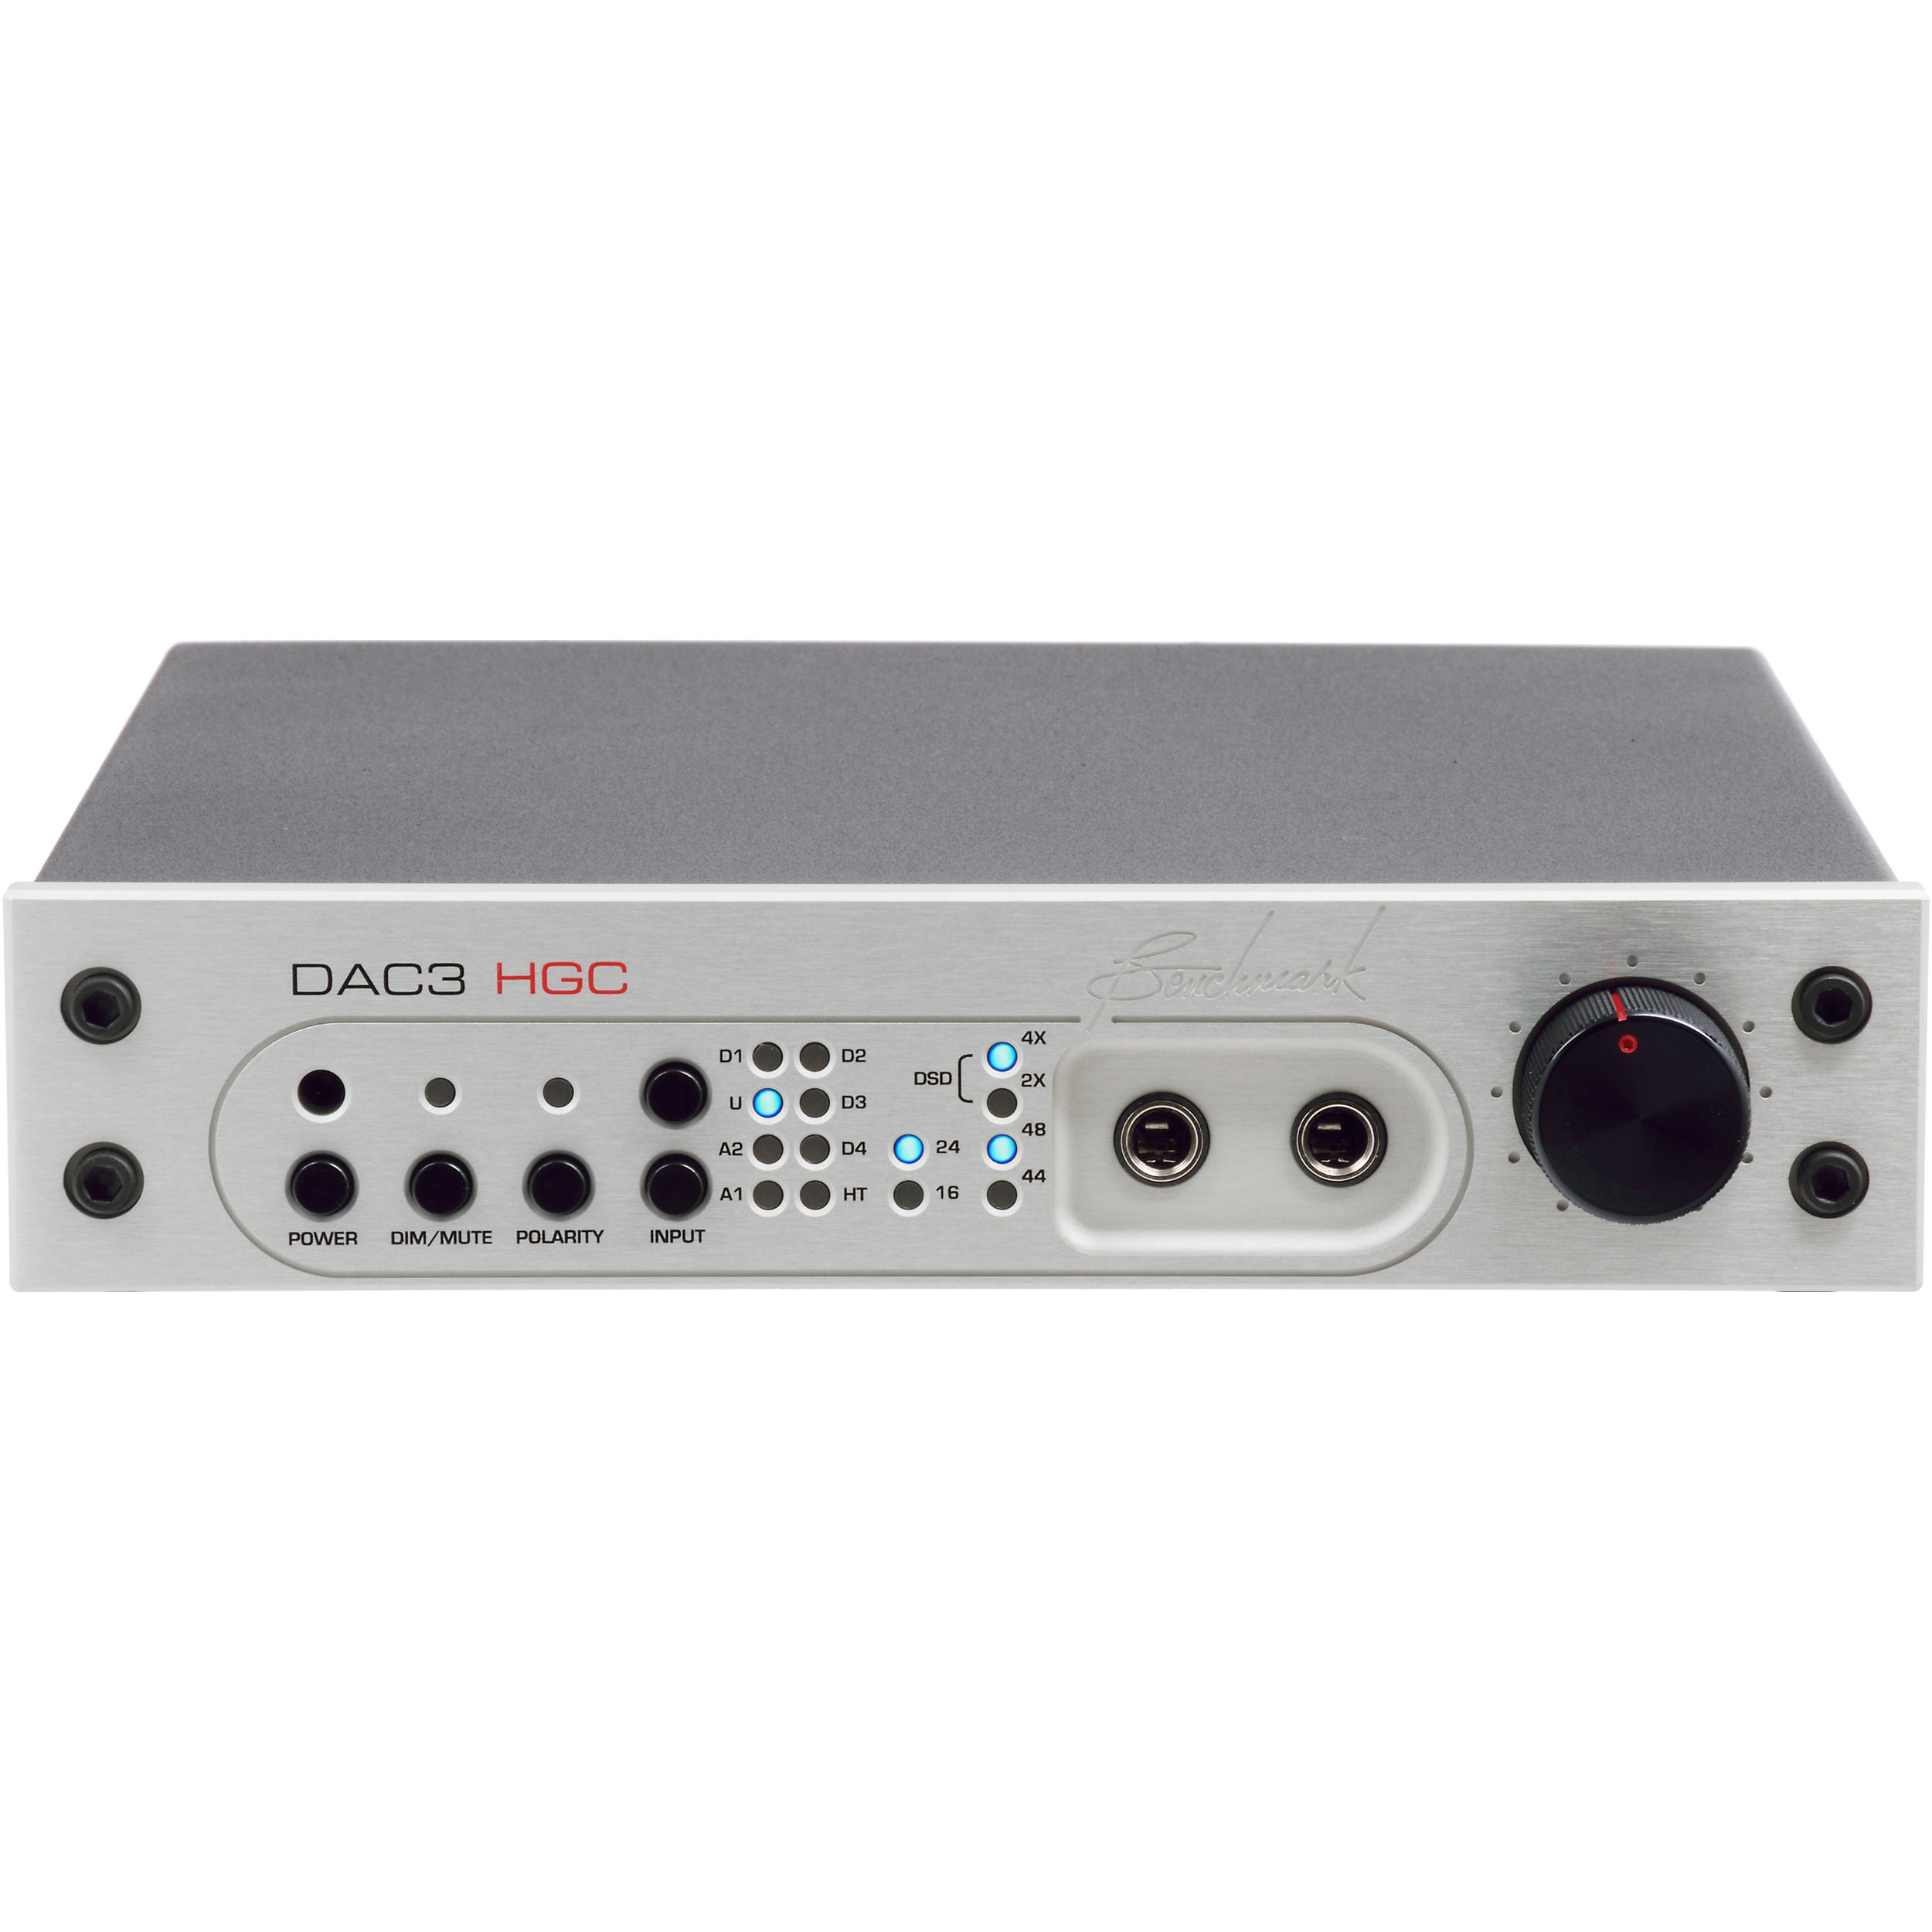 Benchmark Dac3 Hgc Reference Dac And Stereo Preamp 500 14800 131 Ra53 Headphone Amplifier Connection Schematic With Hpa2 Silver